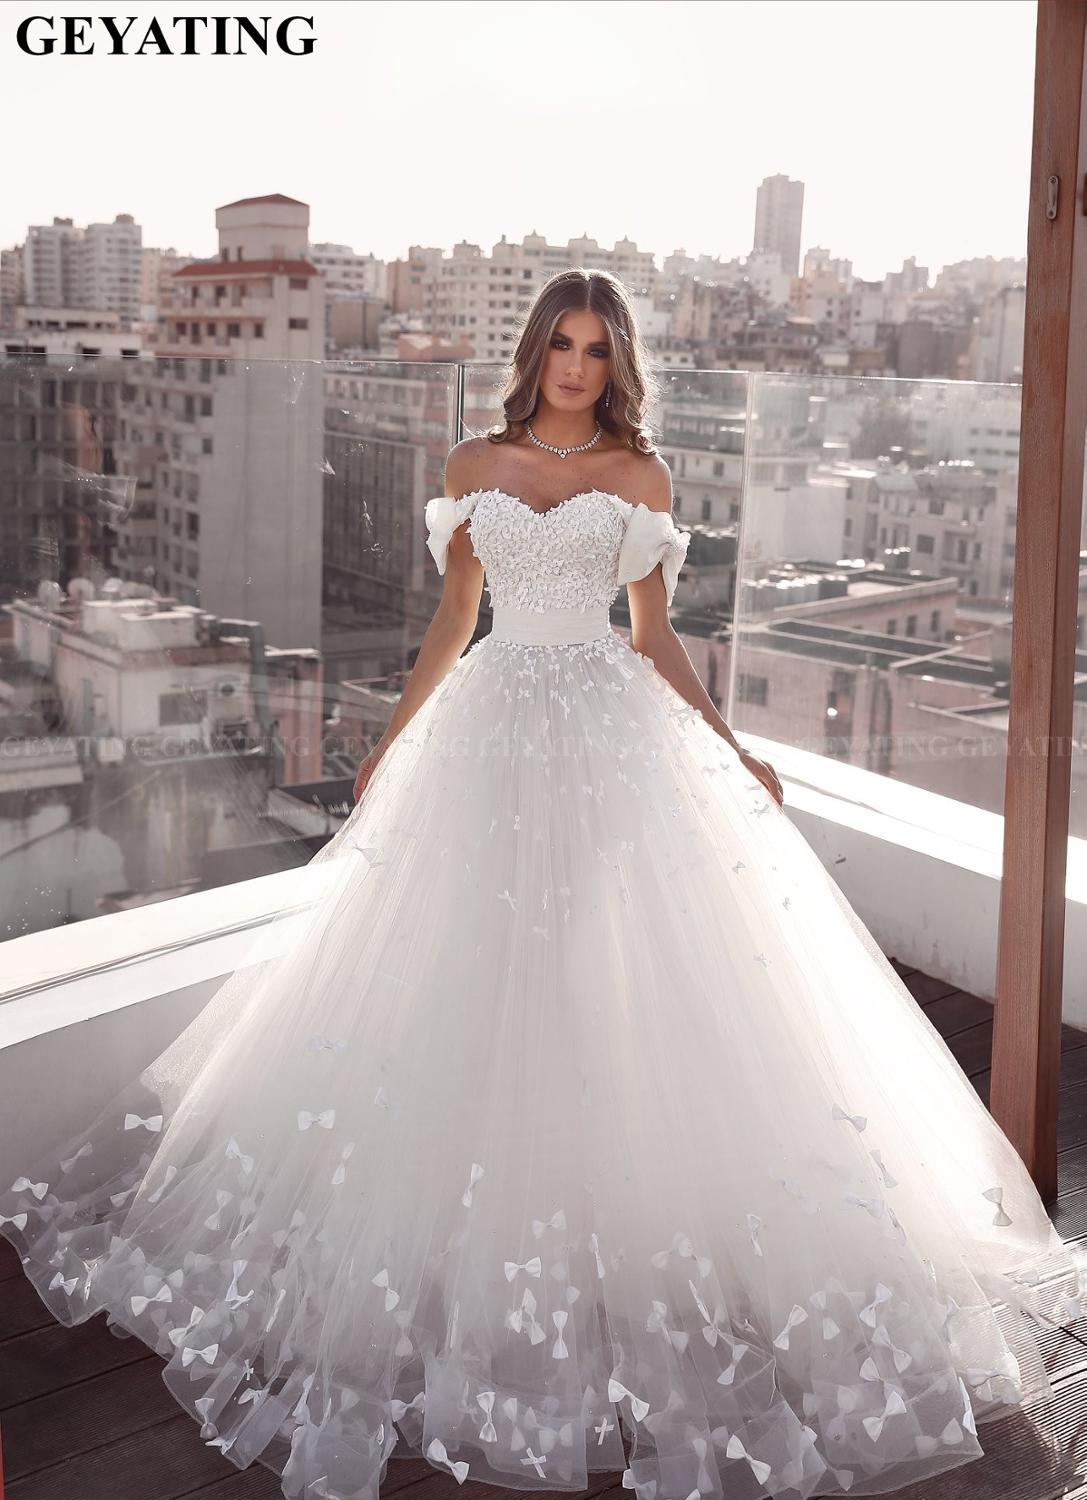 Elegant Cap Sleeves Ball Gown Arabic Wedding Dress 2020 Off The Shoulder Bow Tulle Islamic Dubai Bridal Gowns Plus Size Buy At The Price Of 189 60 In Aliexpress Com Imall Com,Summer Casual Beach Wedding Dresses